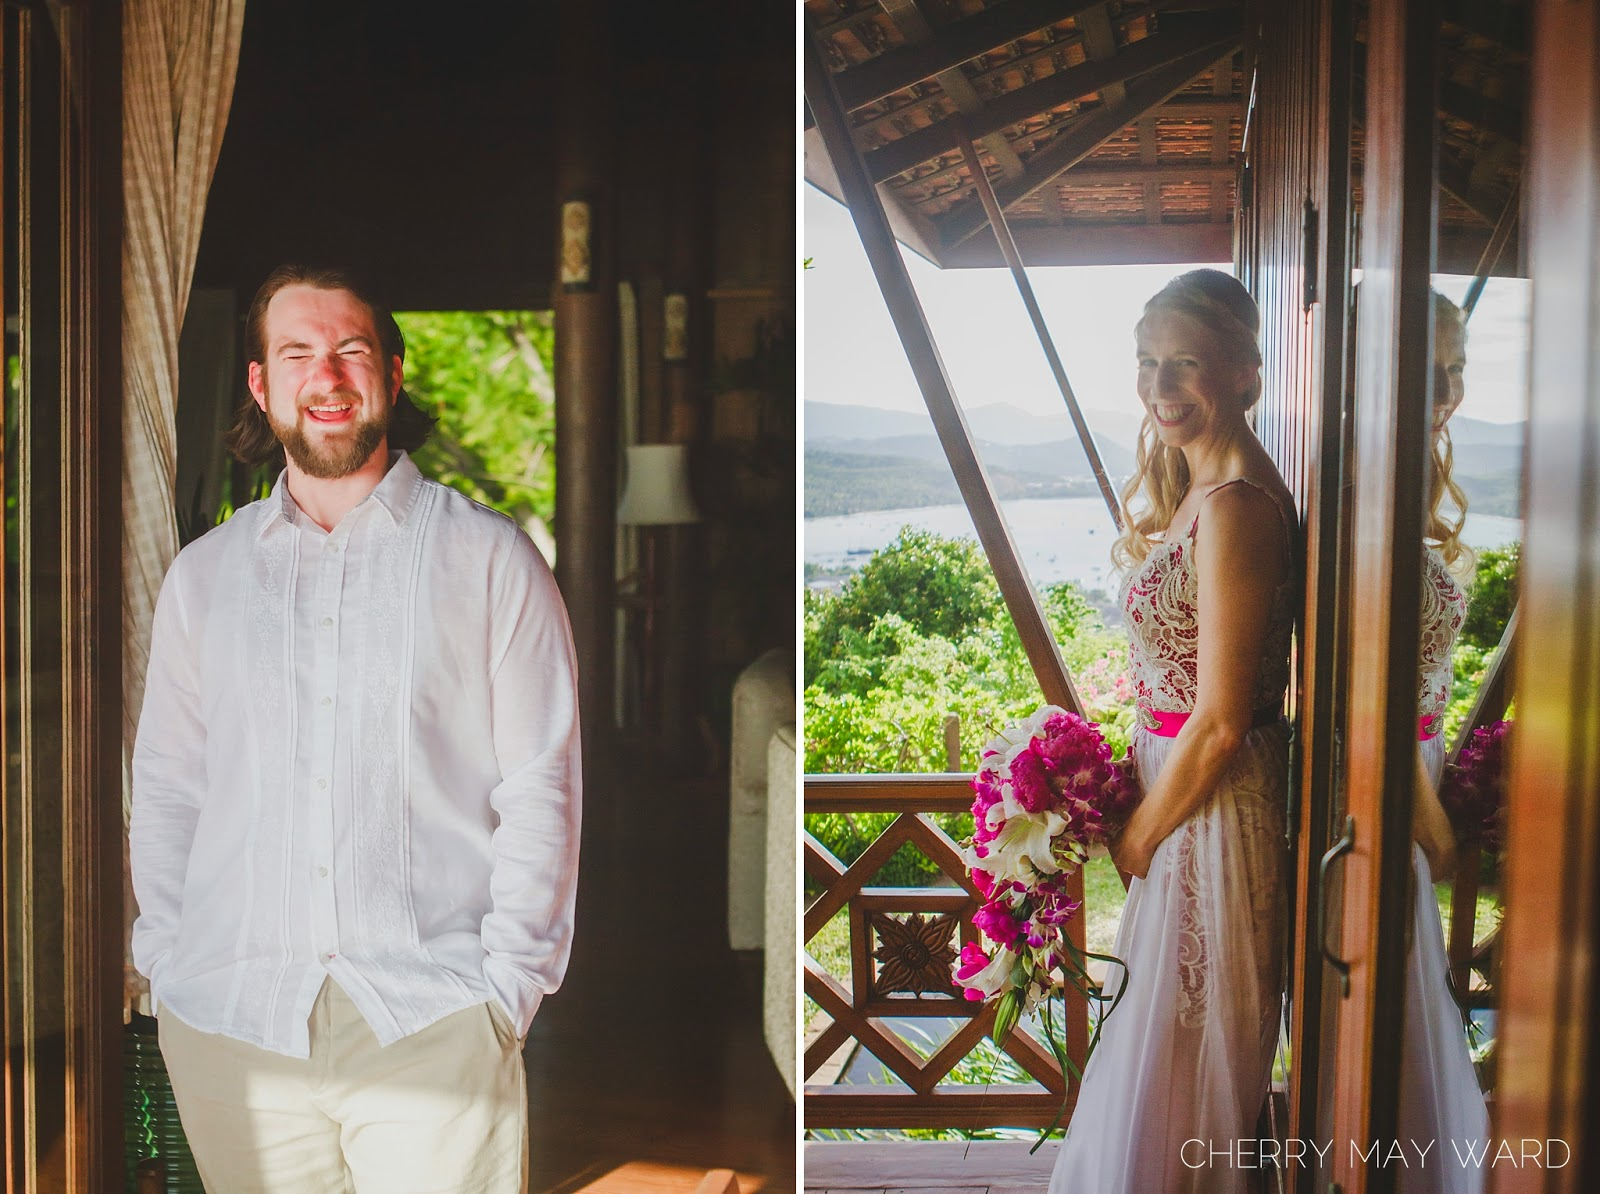 bride and groom portraits before wedding ceremony, happy couple, cute bride and groom, married in Thailand, happy couple married on Koh Samui, Getting married on a Thail island, DIY wedding in Thailand